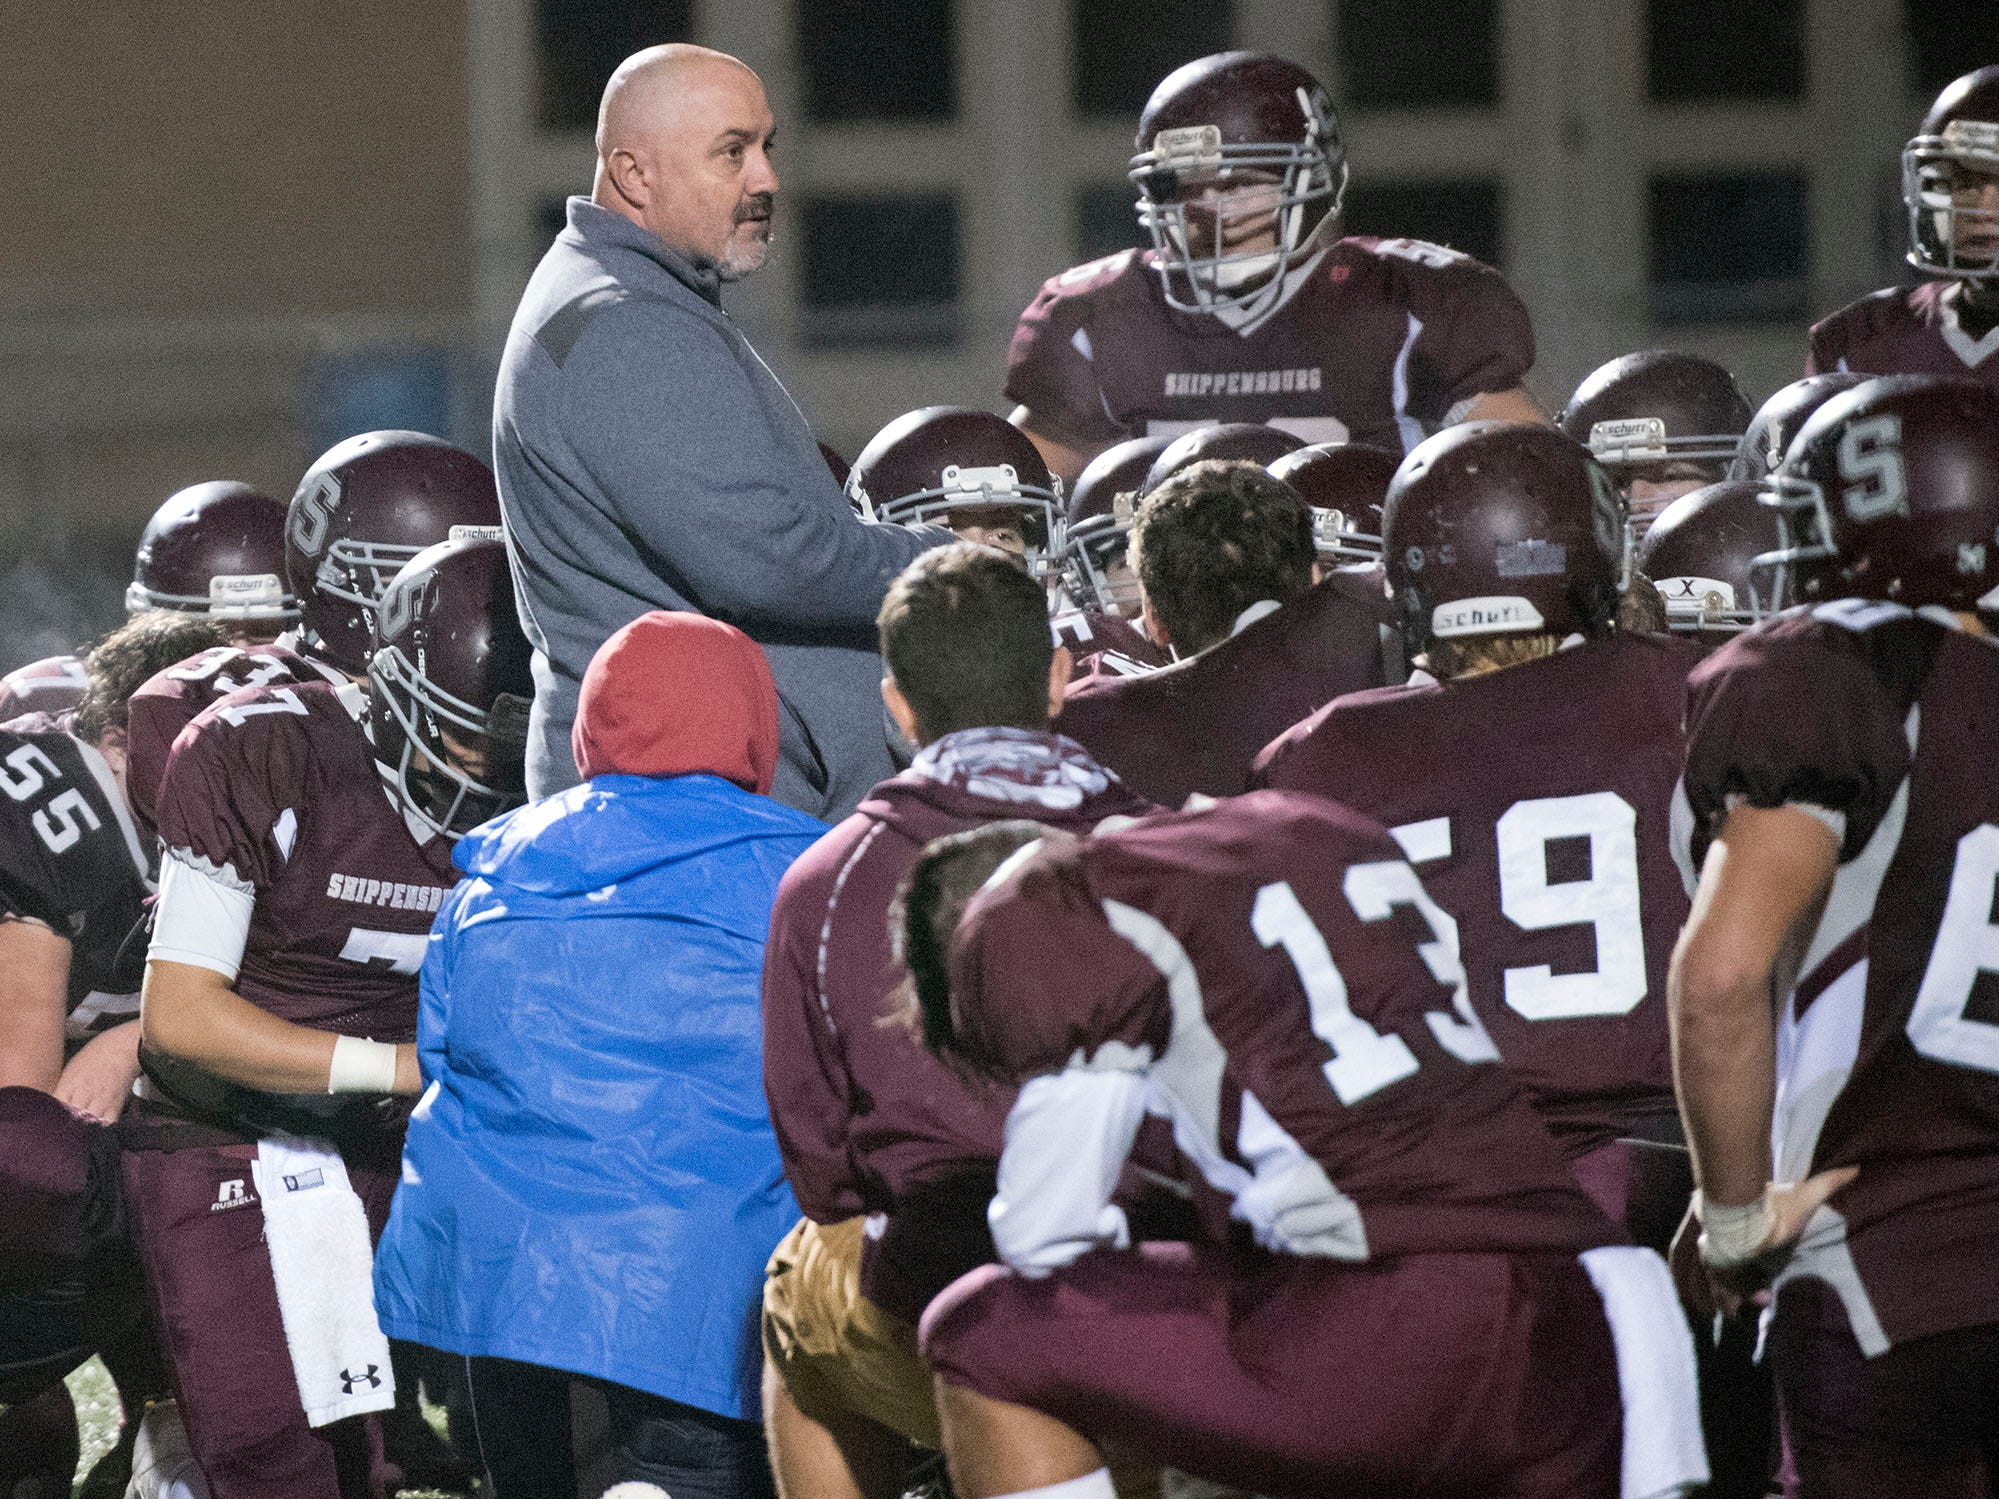 Coach Eric Foust meets with his players after the game. York High defeated Shippensburg 22-6  in the the quarterfinals of PIAA 5A District 3 football playoffs on Friday, Nov. 9, 2018 at Trojan Stadium.